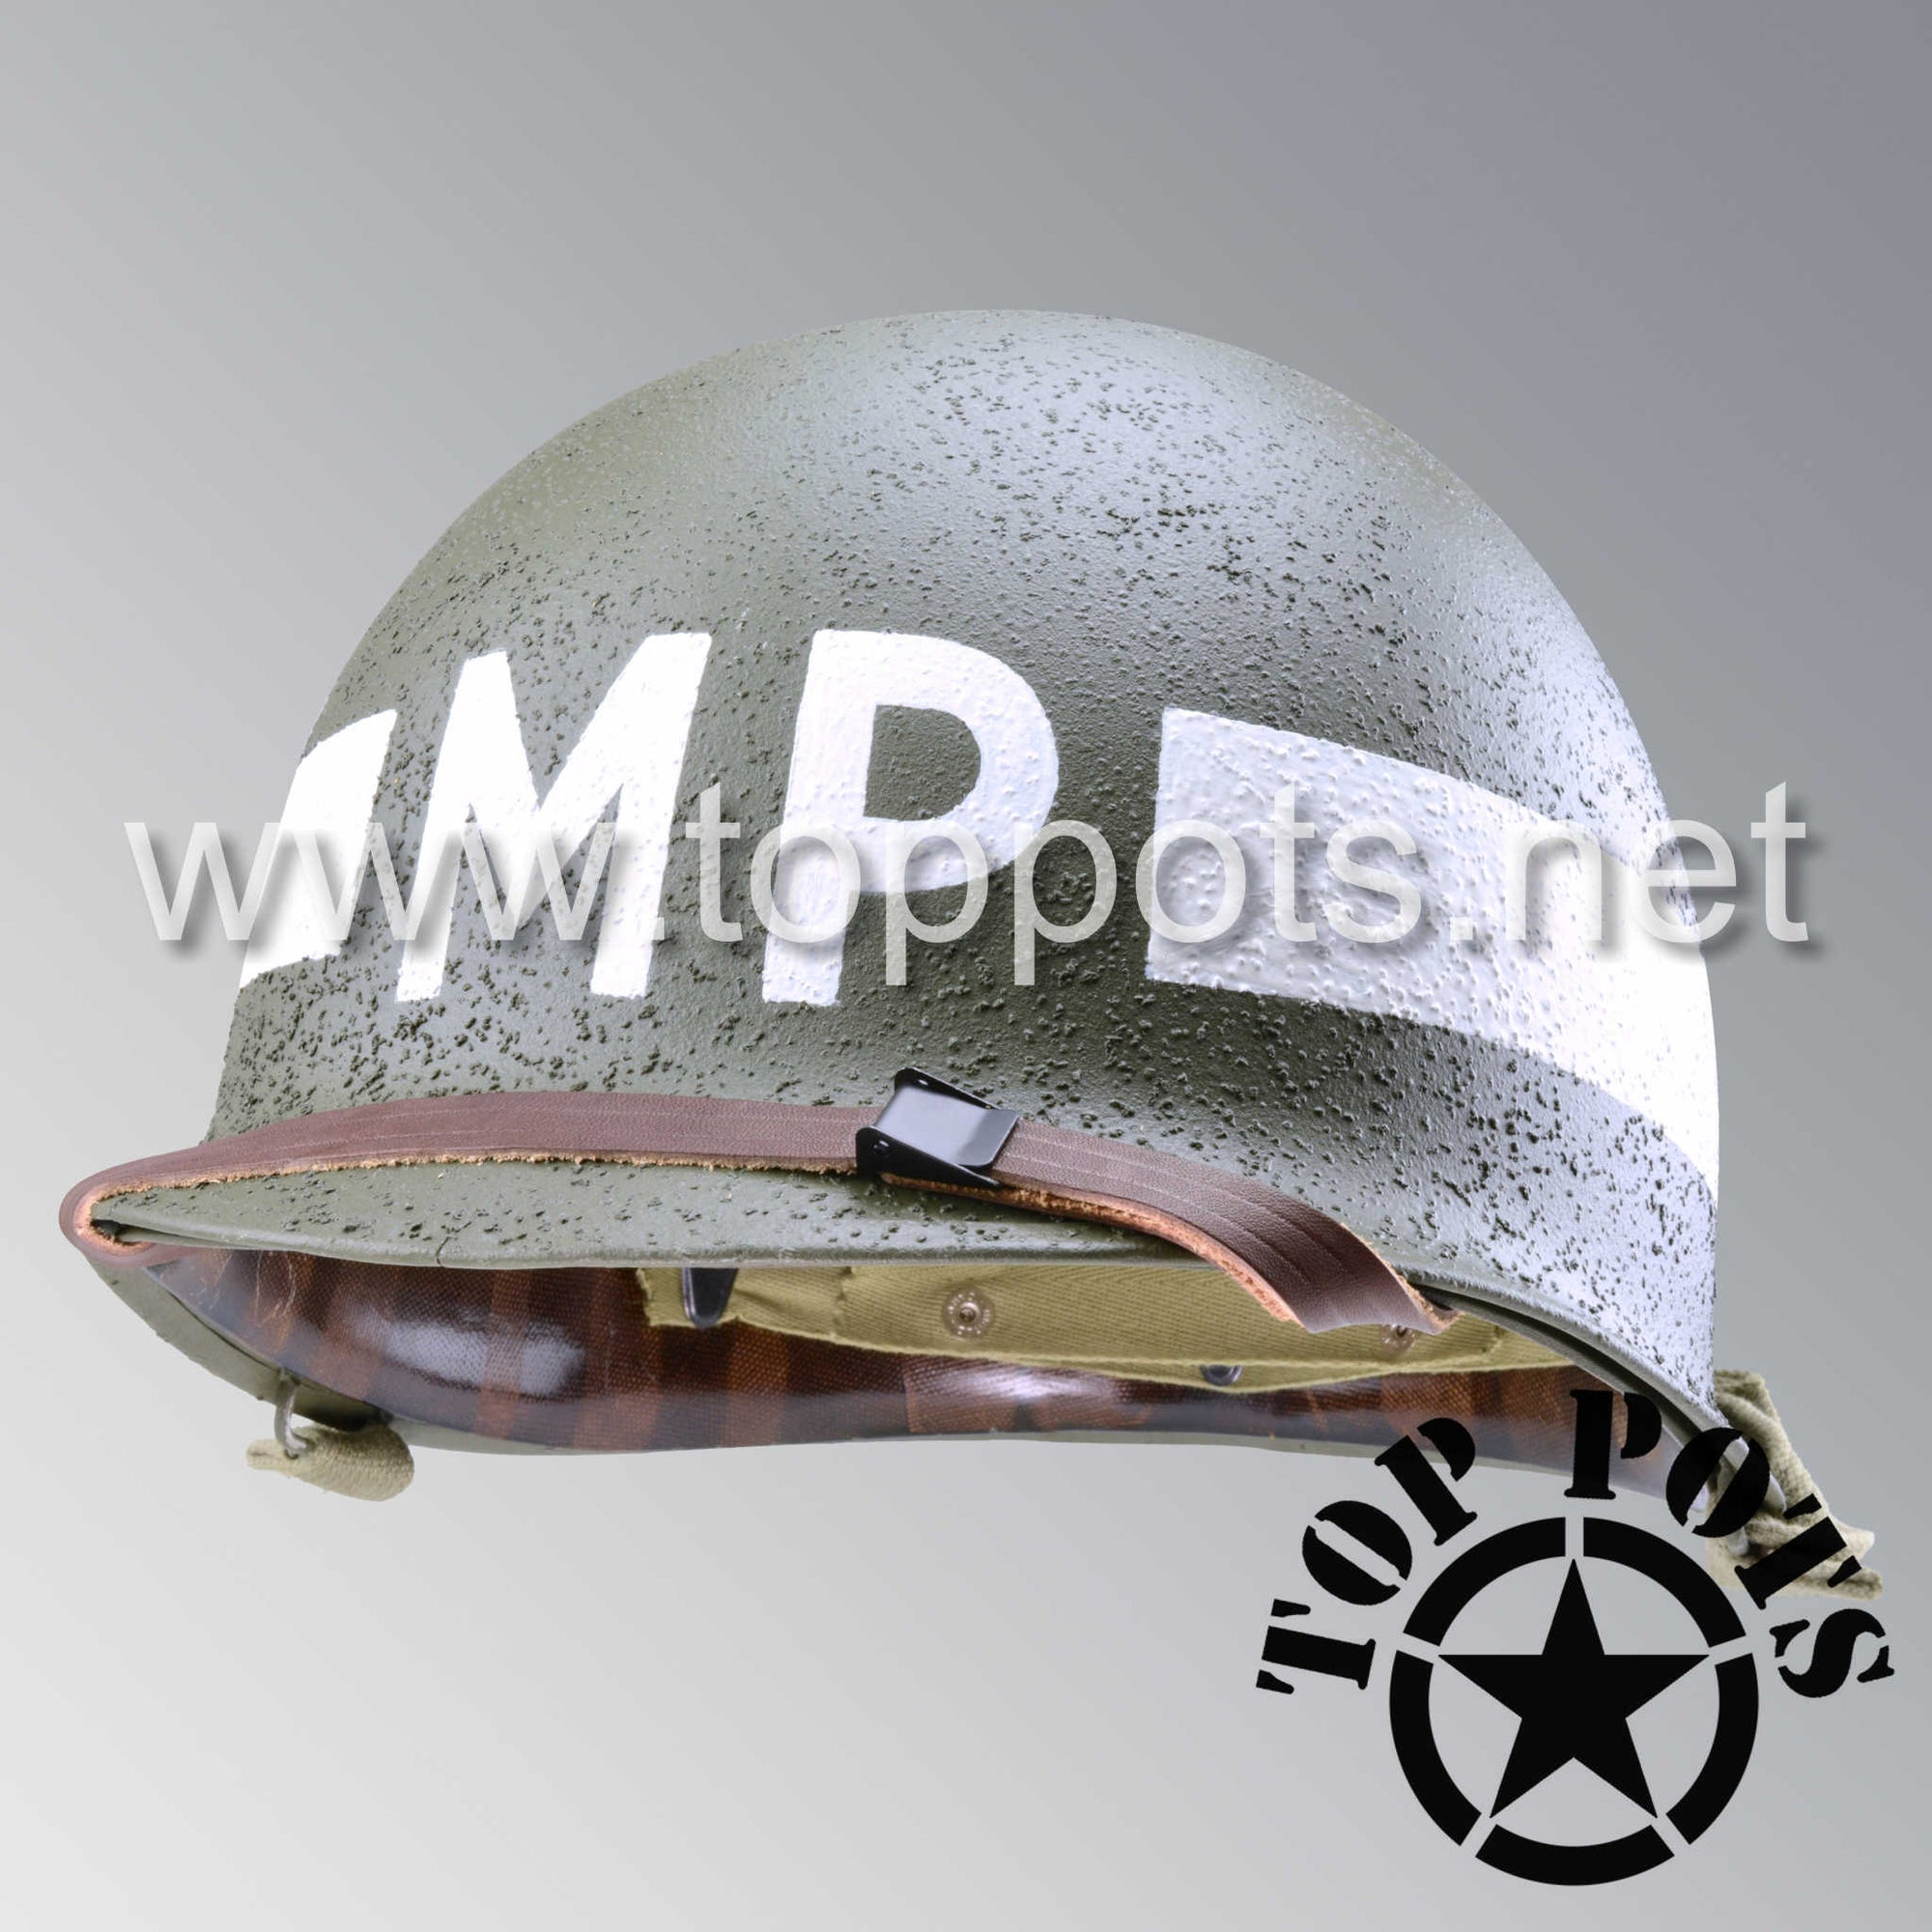 Image 1 of WWII US Army Restored Original M1 Infantry Helmet Swivel Bale Shell and Liner with White Battalion MP Military Police Emblem